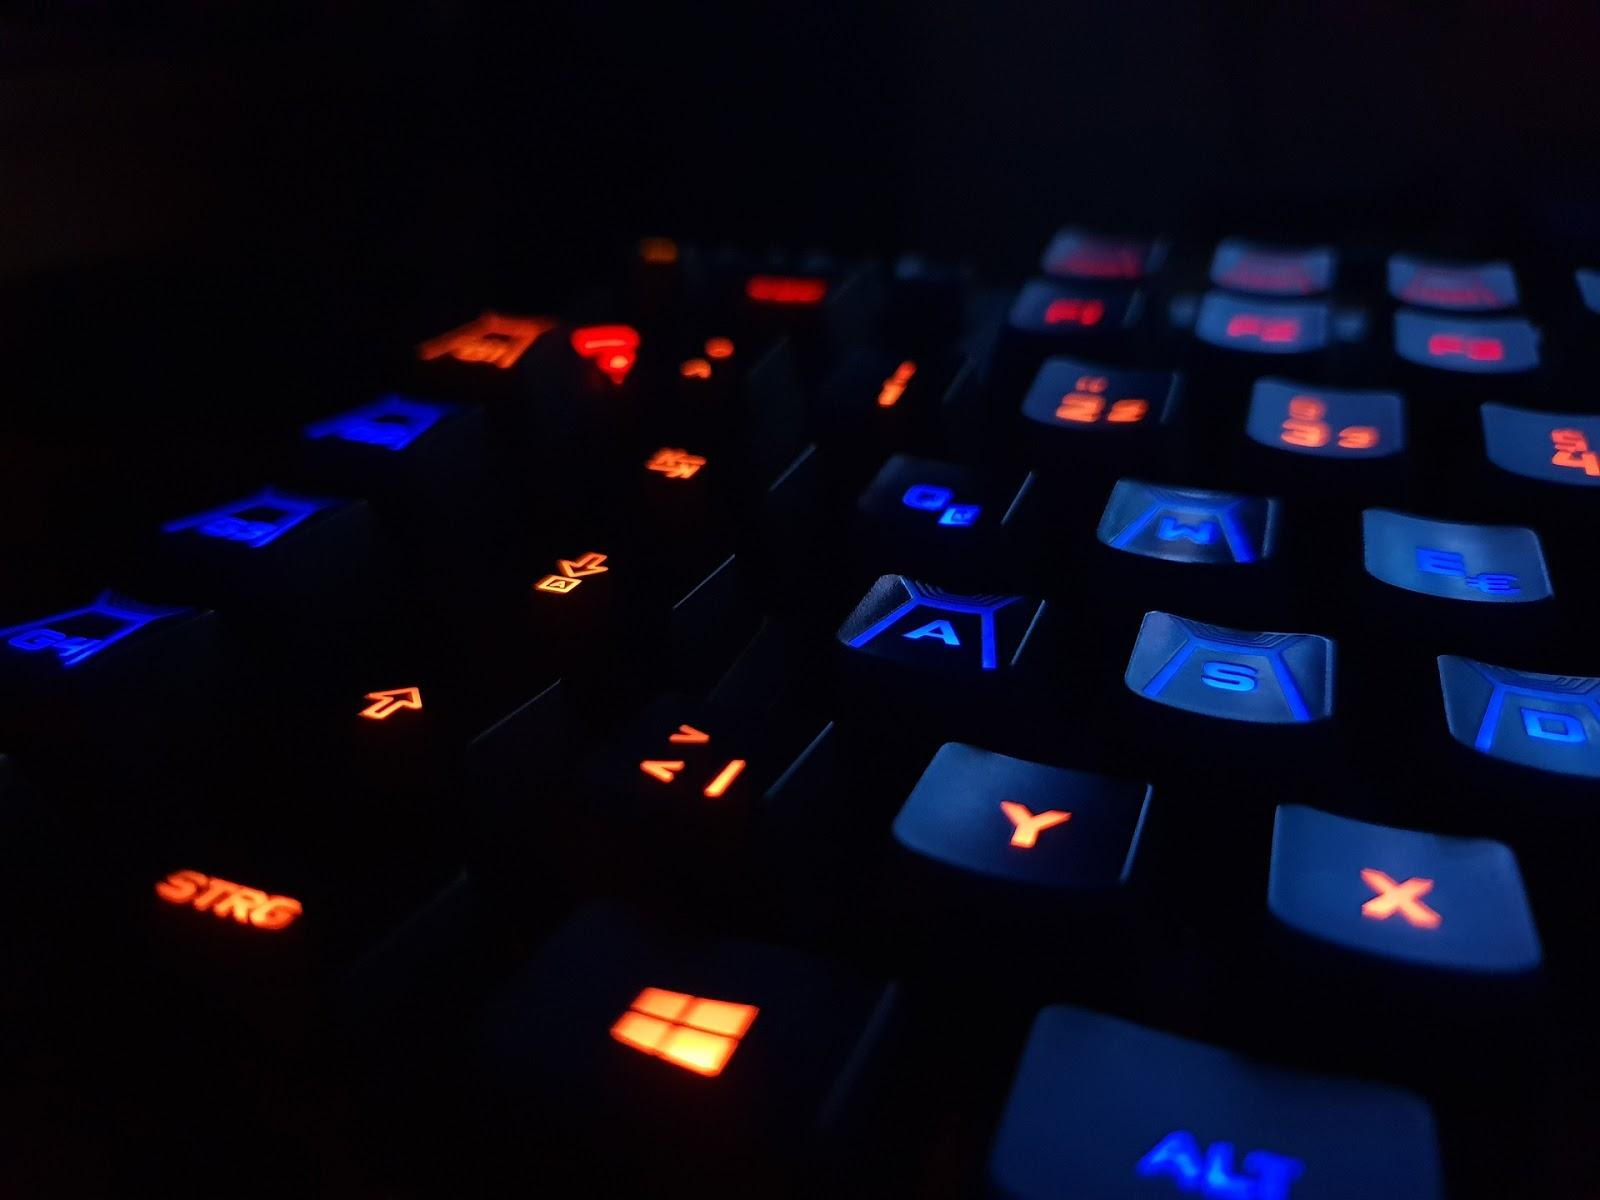 Backlit Gaming Keyboard to give you the edge